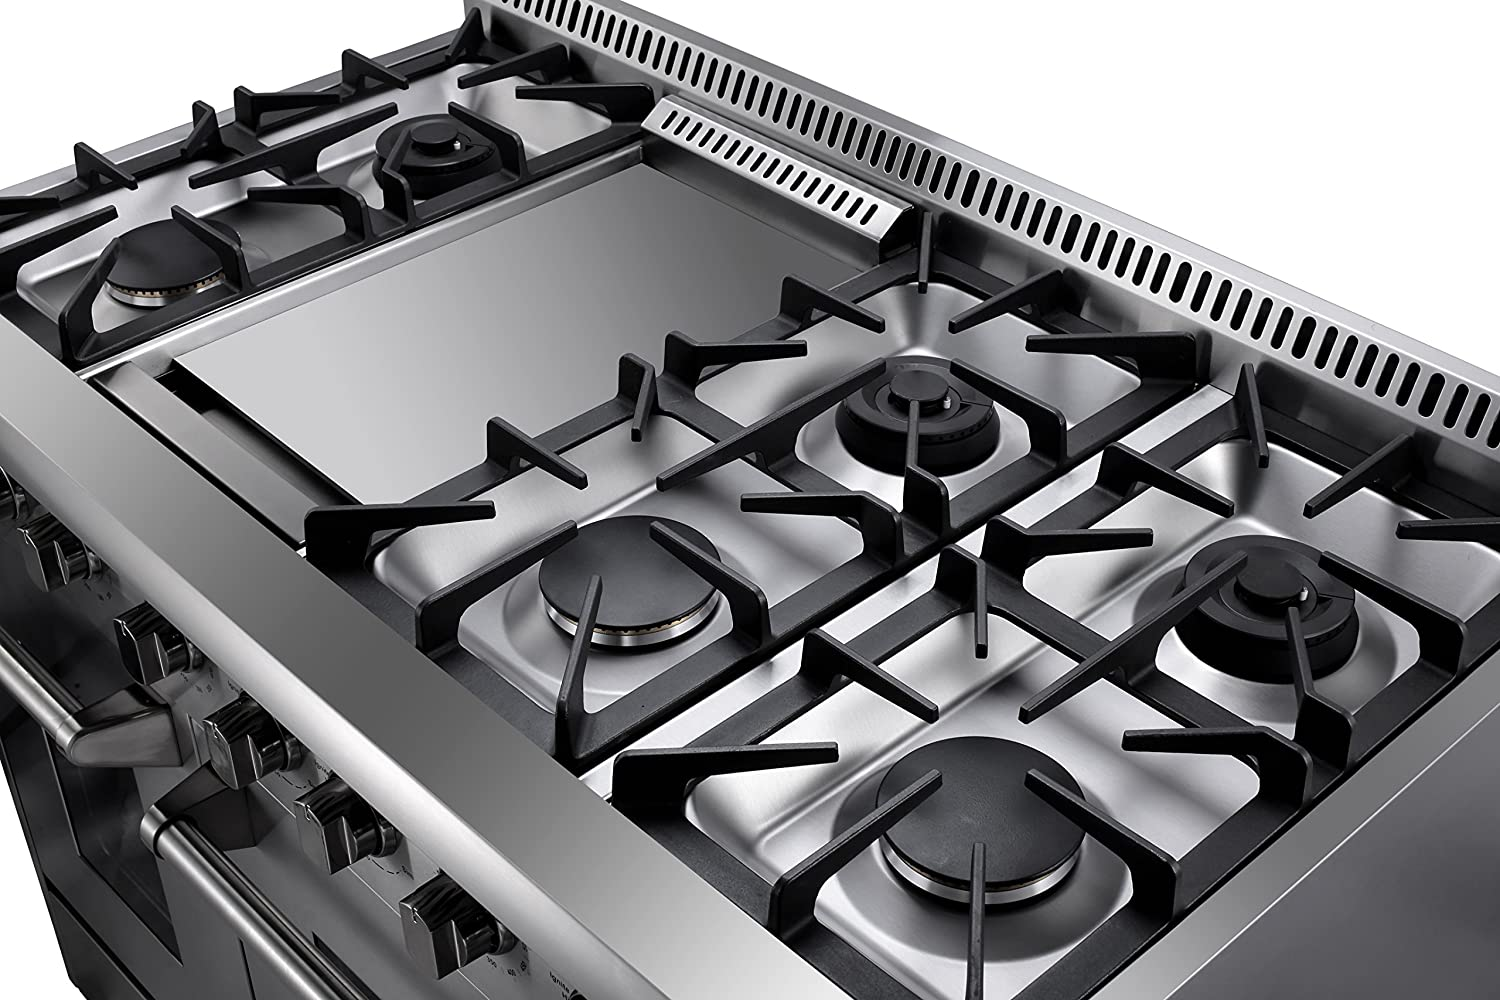 Kitchen gas stove top view - Amazon Com Thorkitchen Hrd4803u 48 Freestanding Professional Style Dual Fuel Range With 4 2 And 2 5 Cu Ft Double Oven 6 Burners Griddle